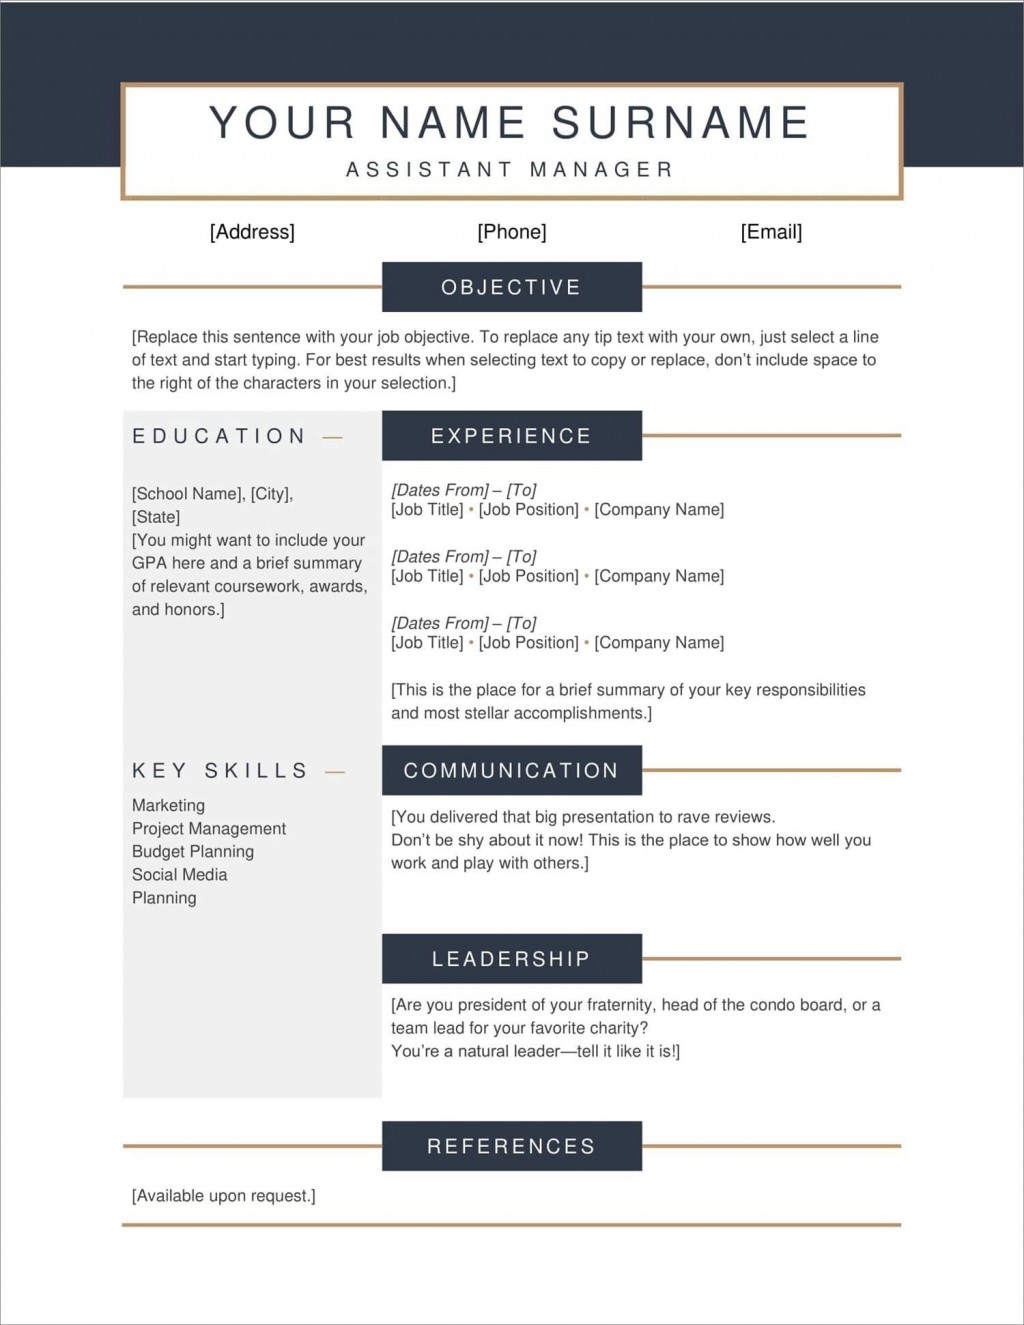 004 Marvelou Resume Template For Free Concept  Best Word Freelance Writer MicrosoftLarge